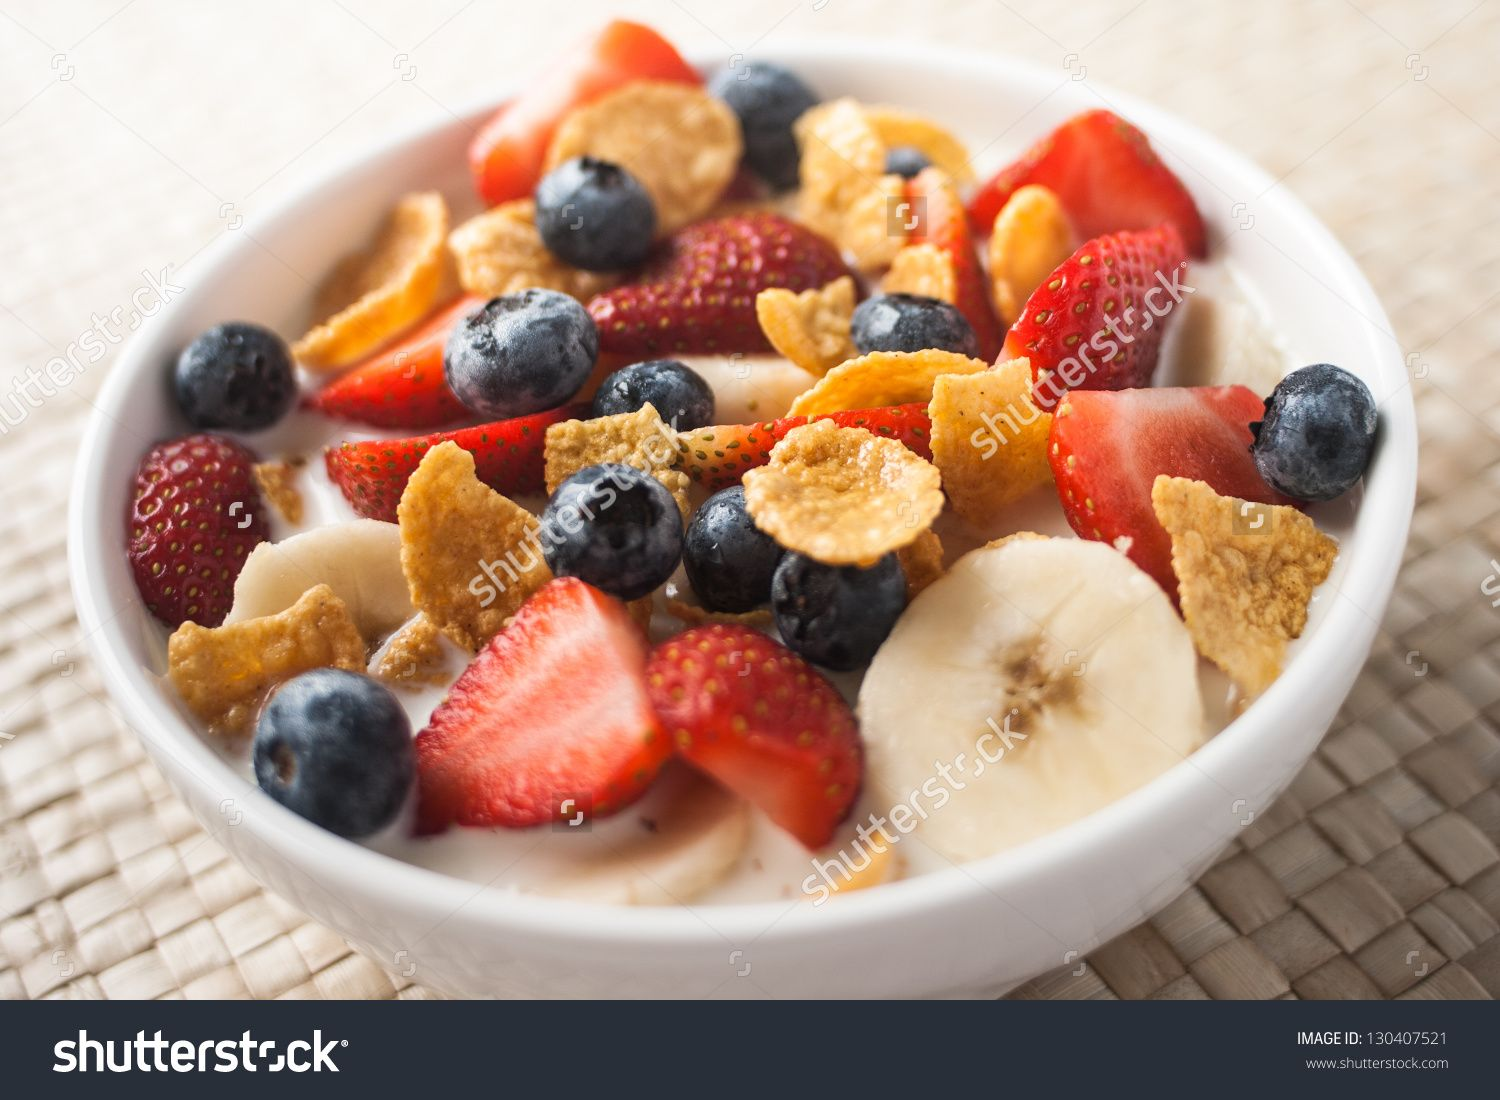 Healthy Breakfast Corn Flakes With Strawberry Blueberry Banana